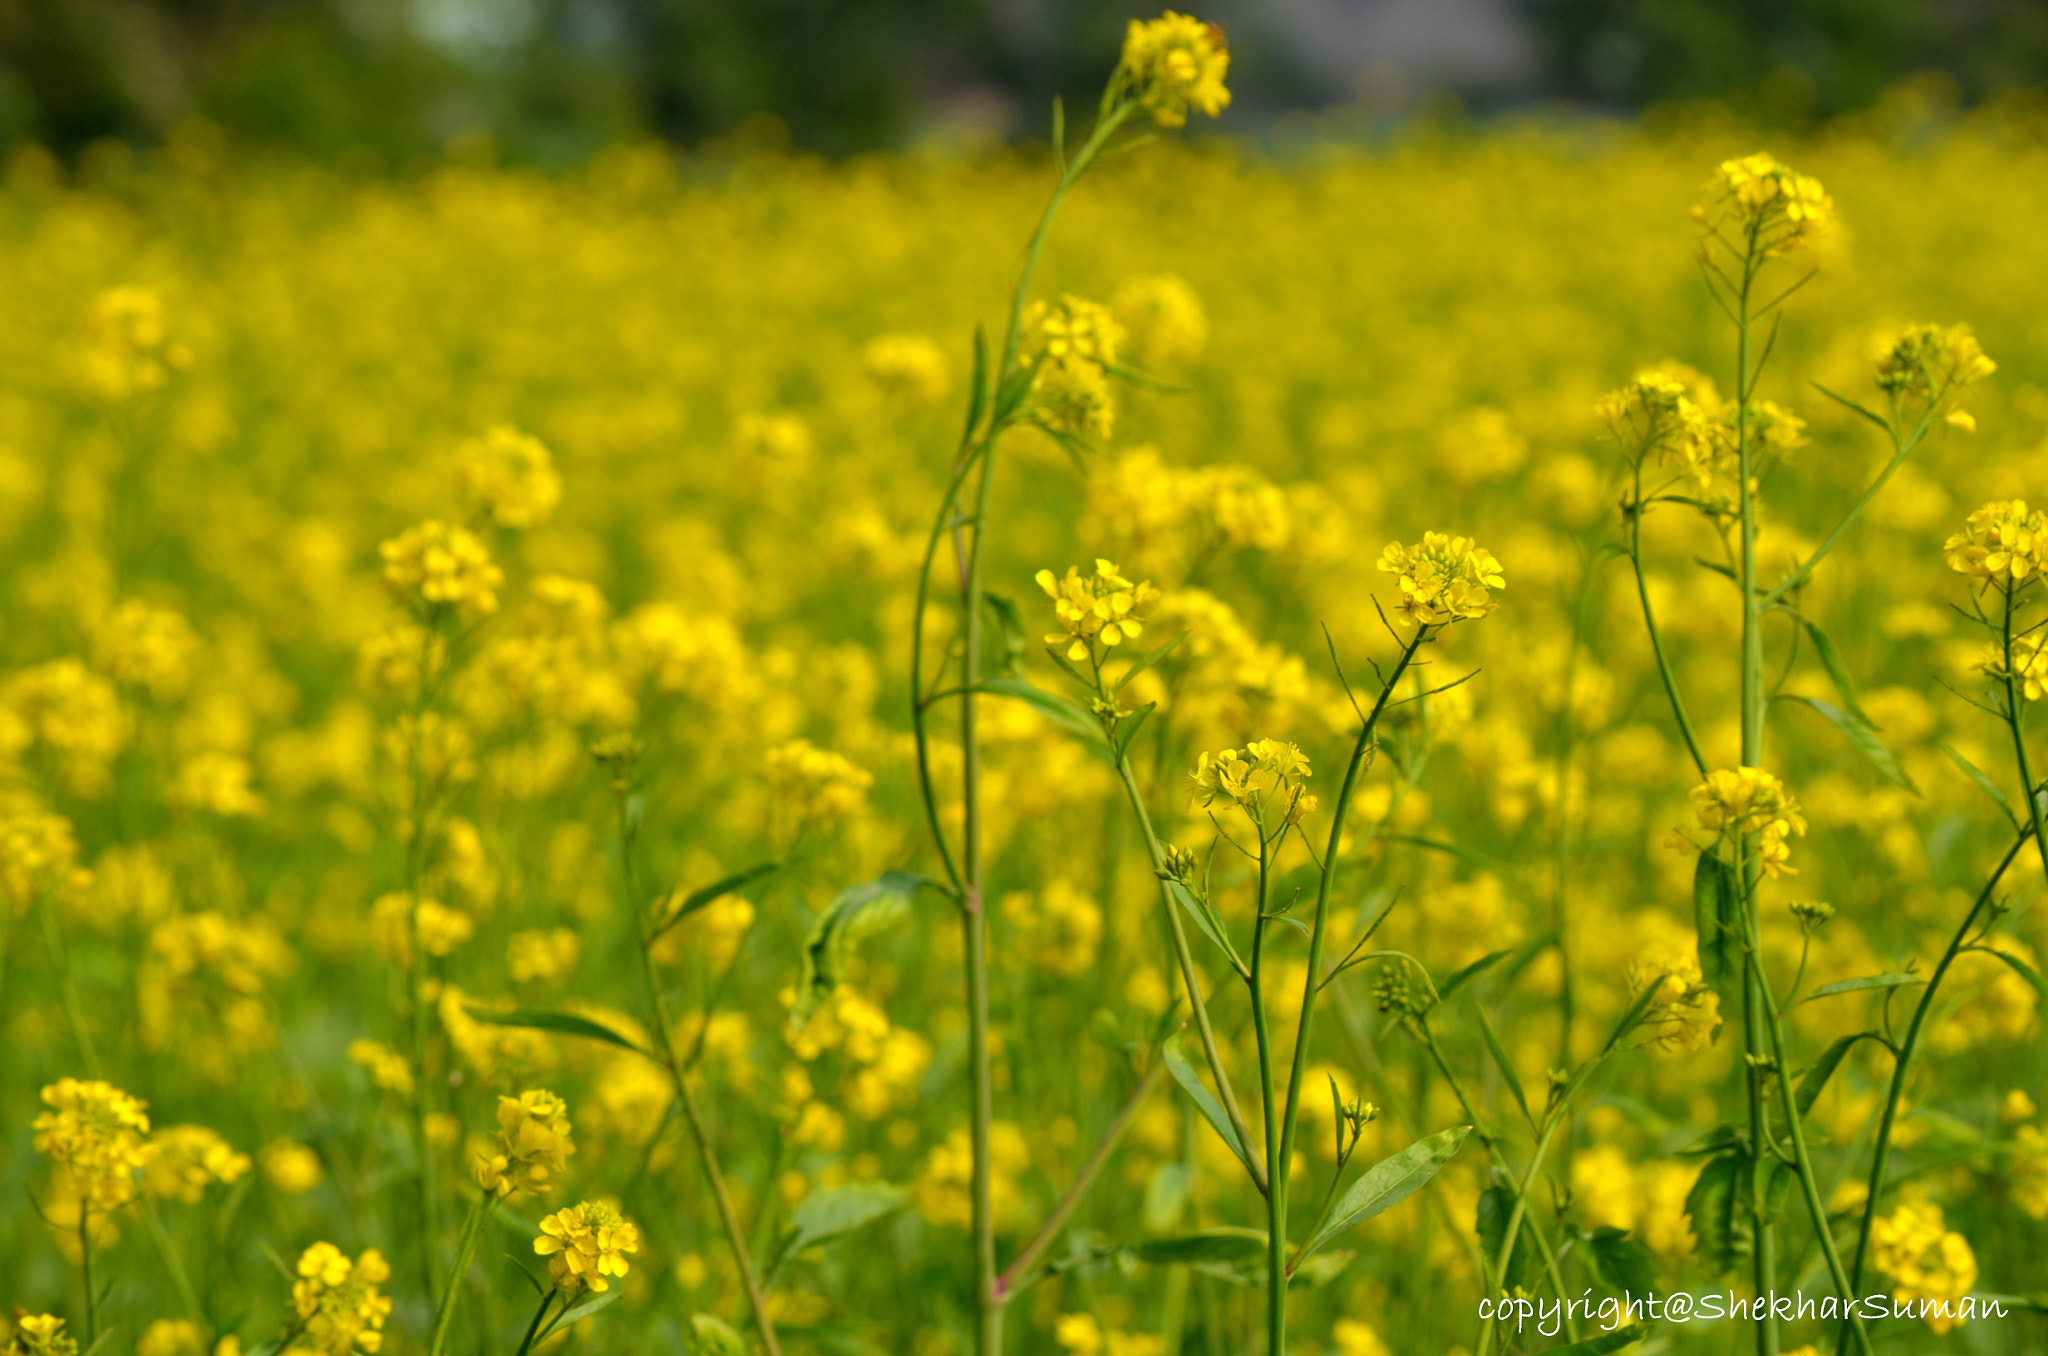 Photograph mustard flower.! by Shekhar Suman on 500px